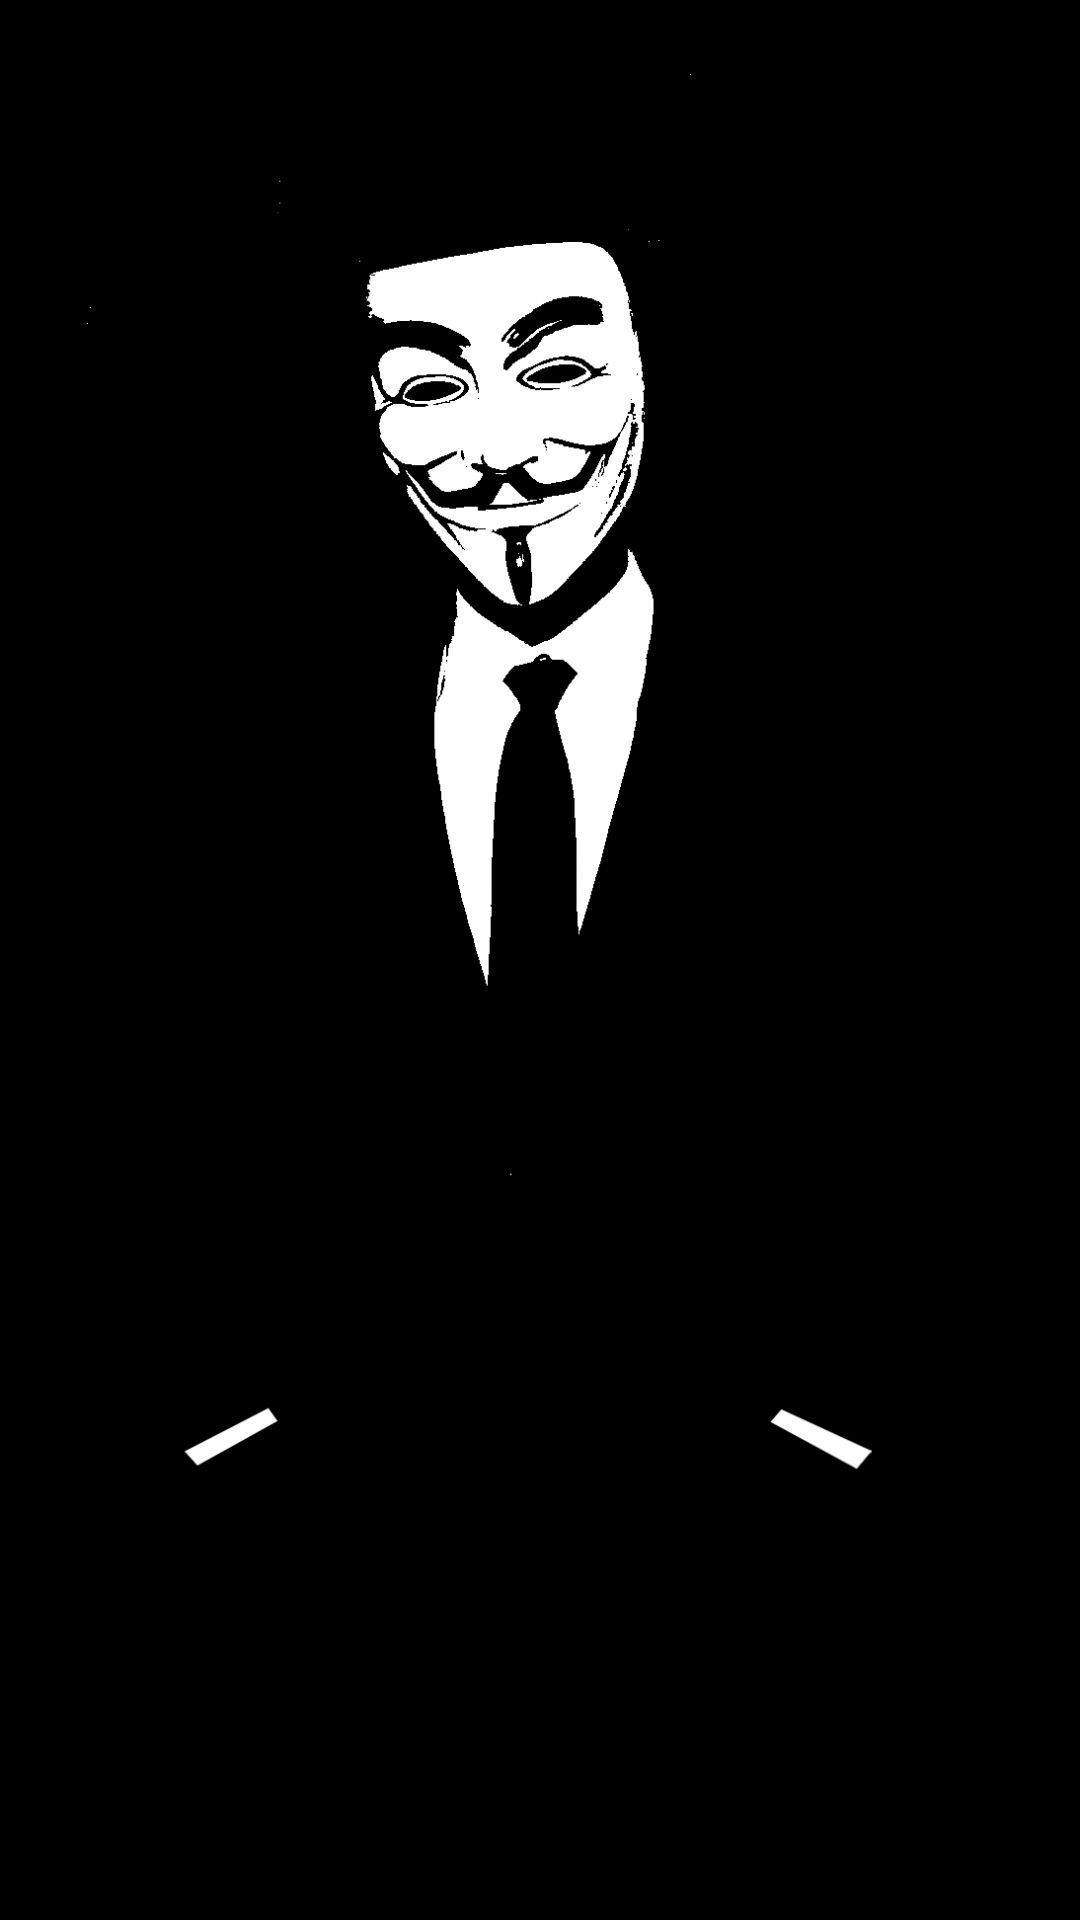 Download Gambar Wallpaper Hd Anonymous Iphone Terbaru 2020